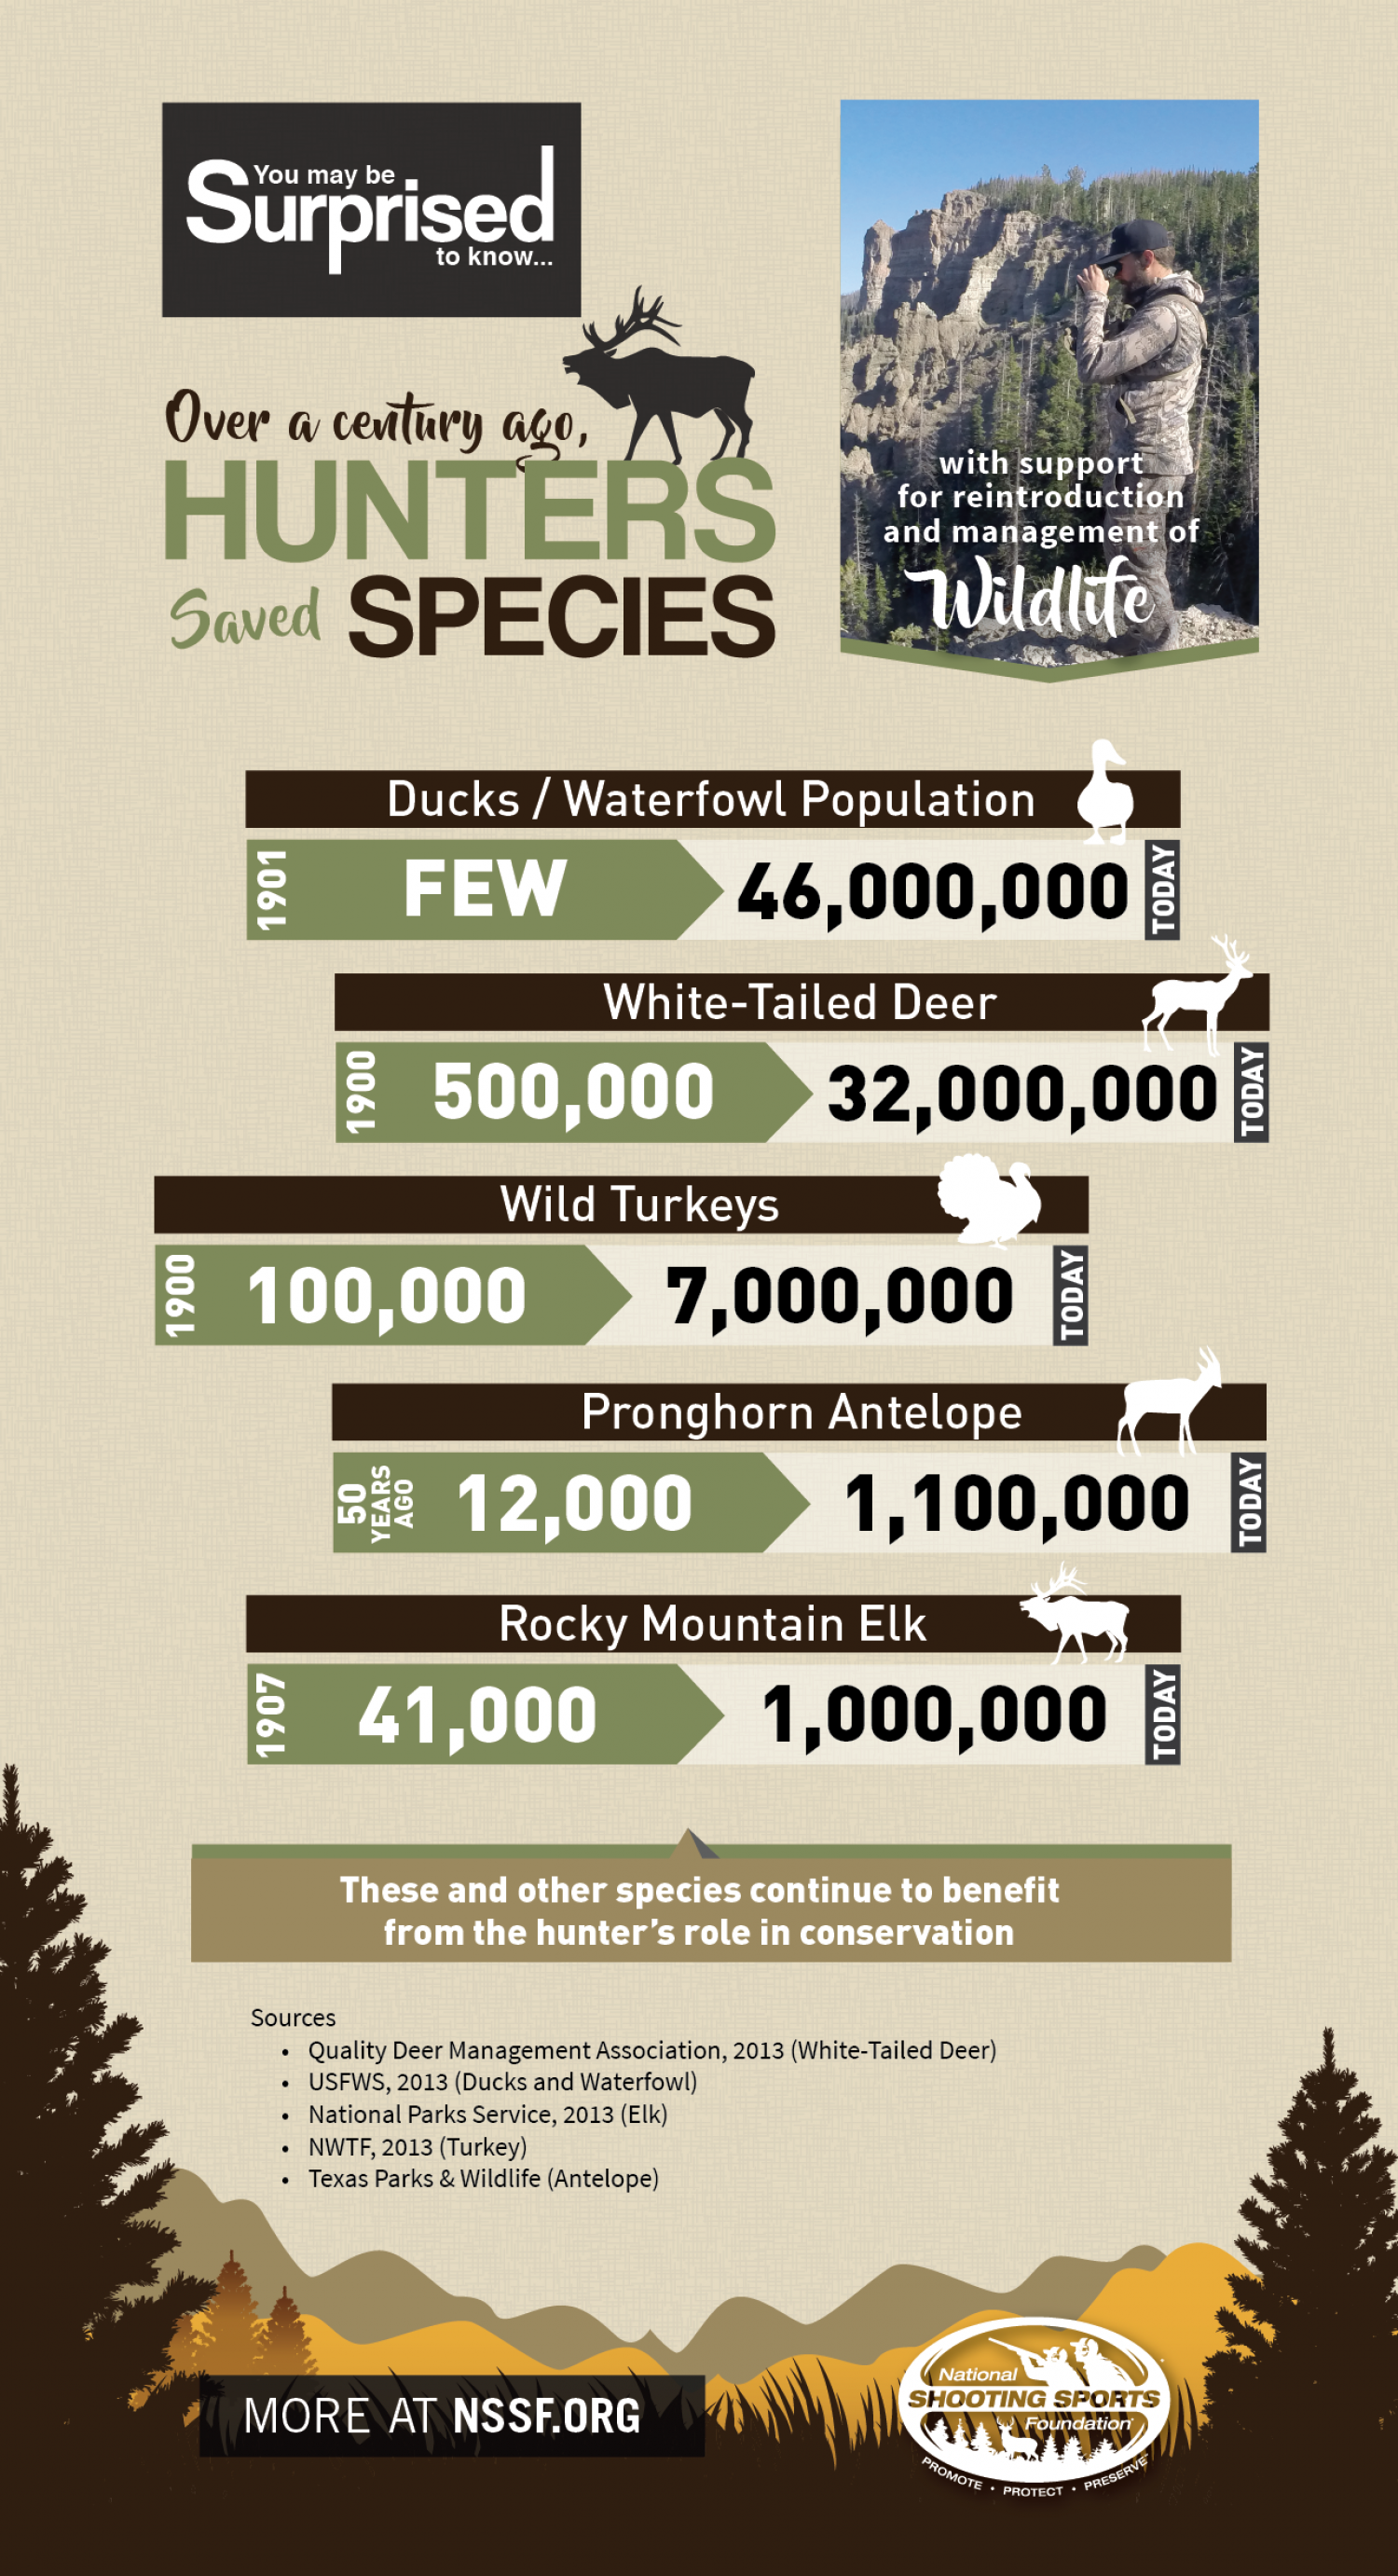 Hunters Saved Species Infographic